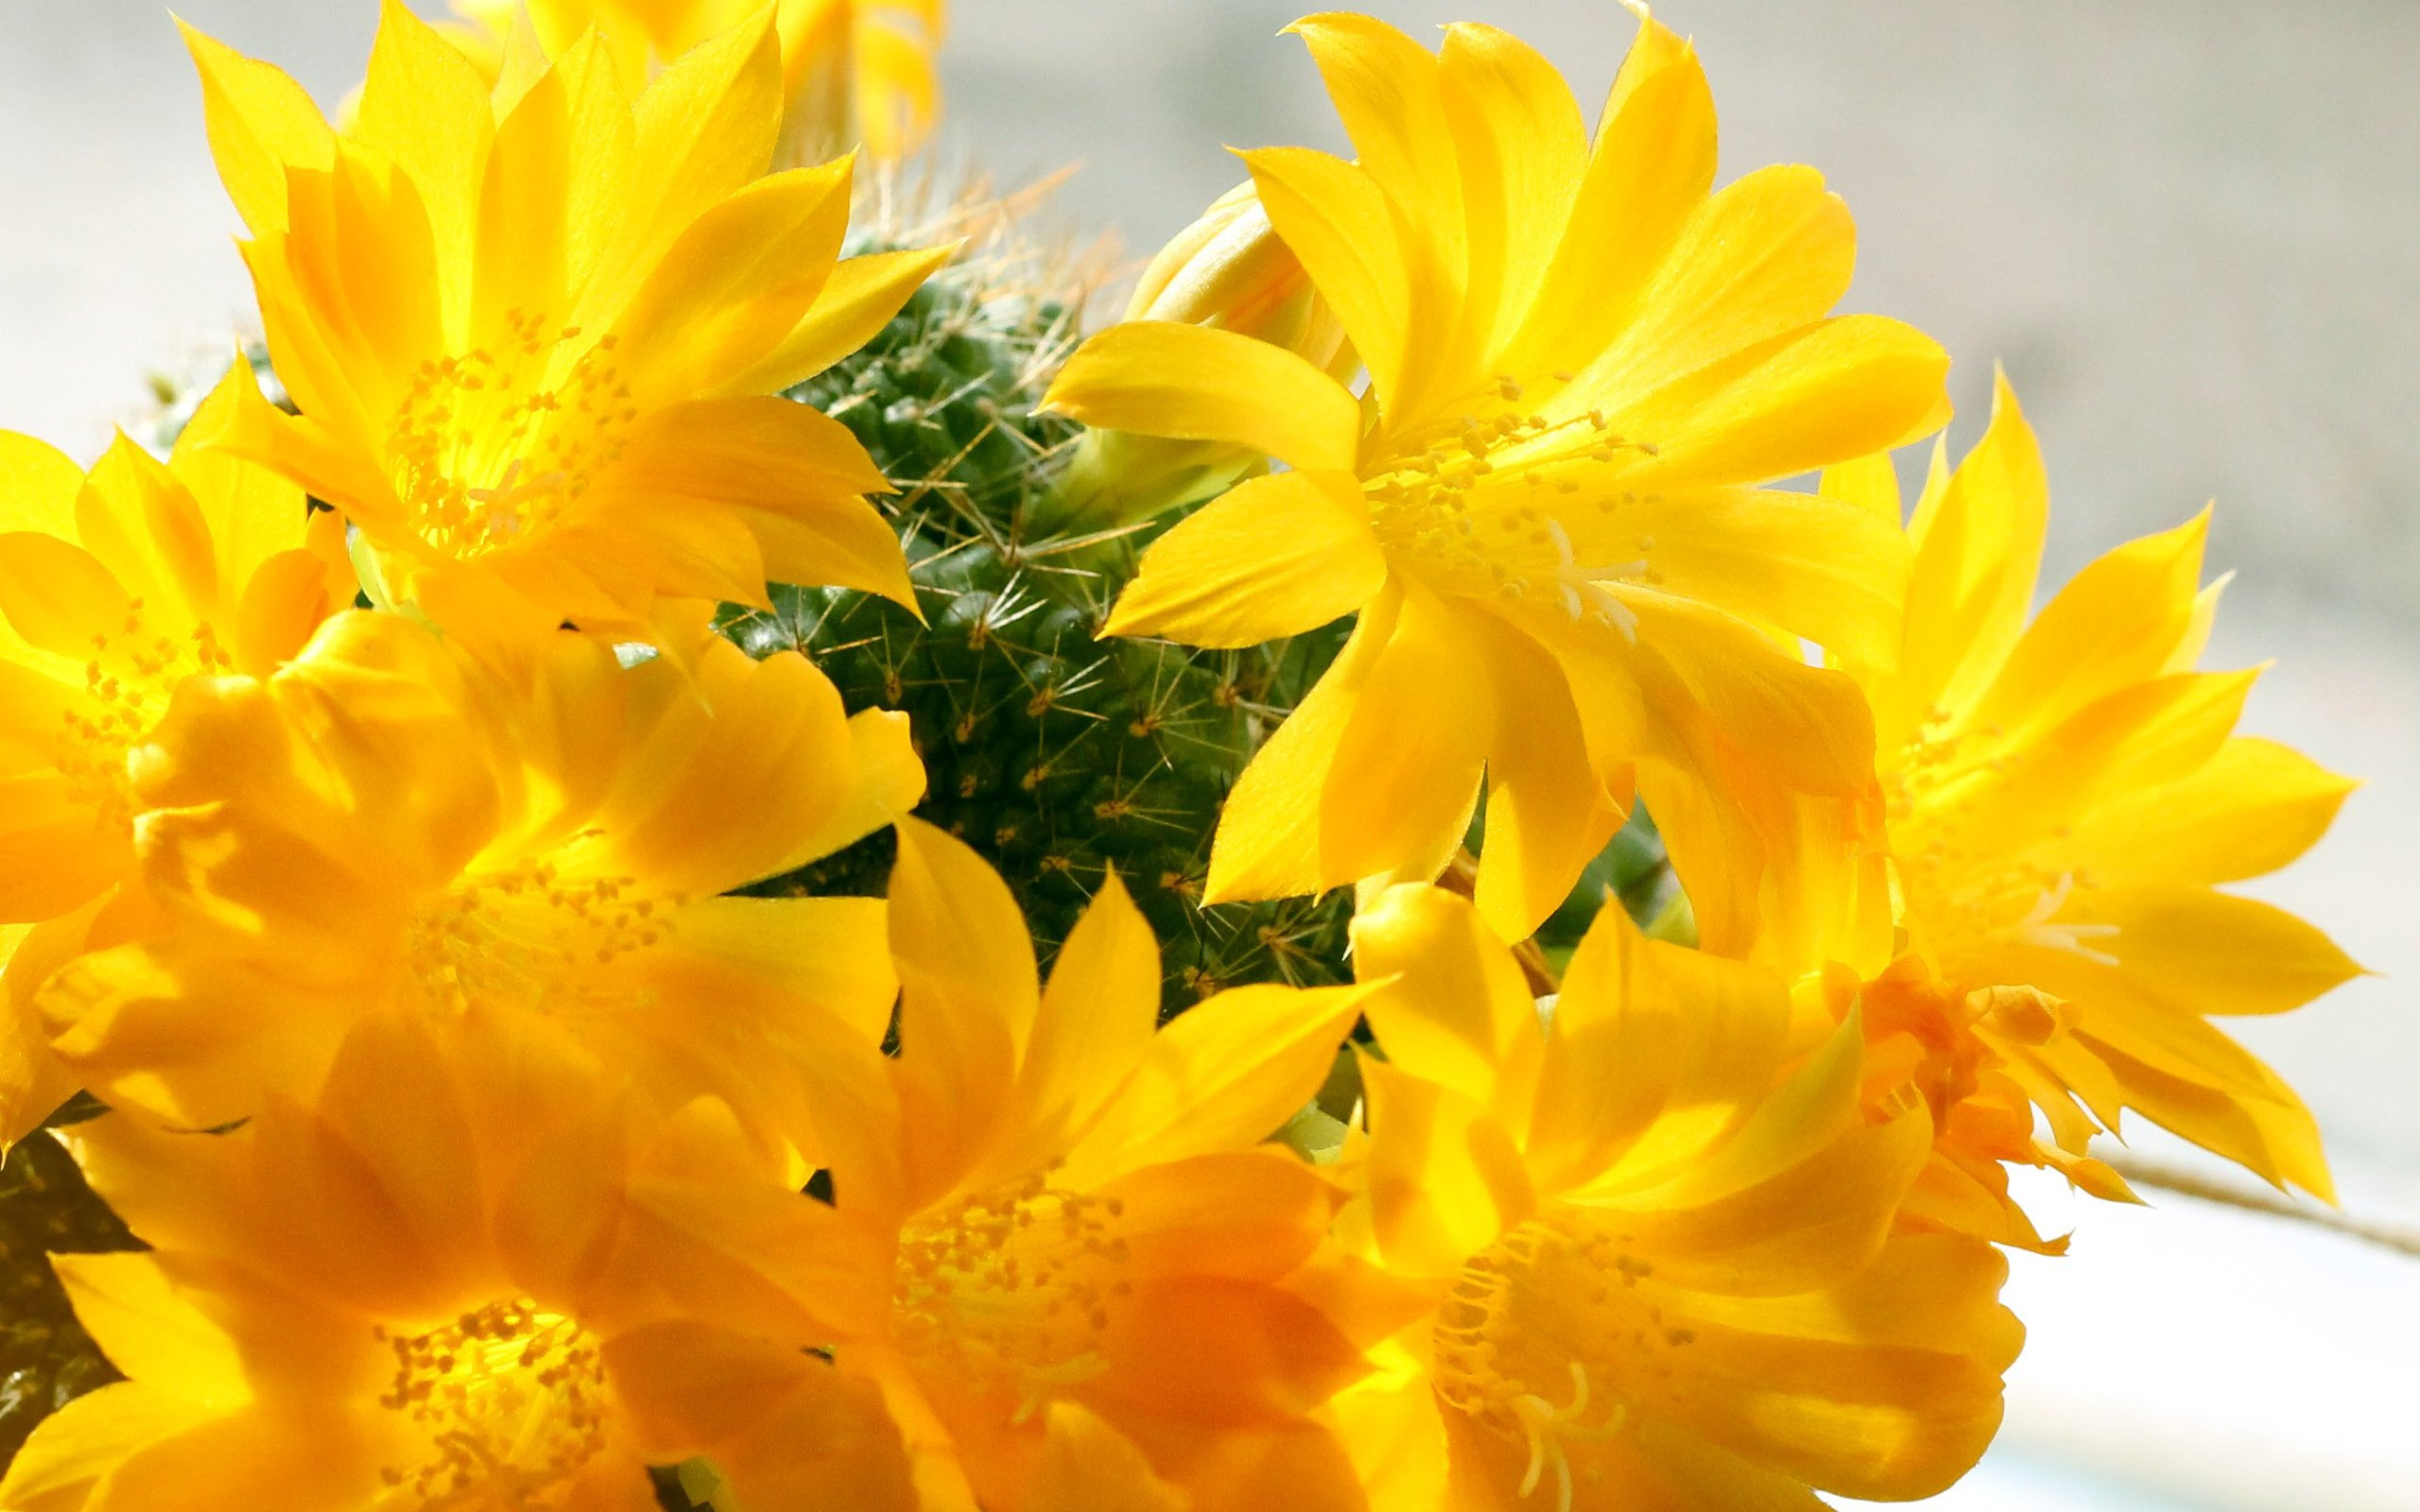 Yellow Cactus Flowers Hd Wallpaper Background Image 2560x1600